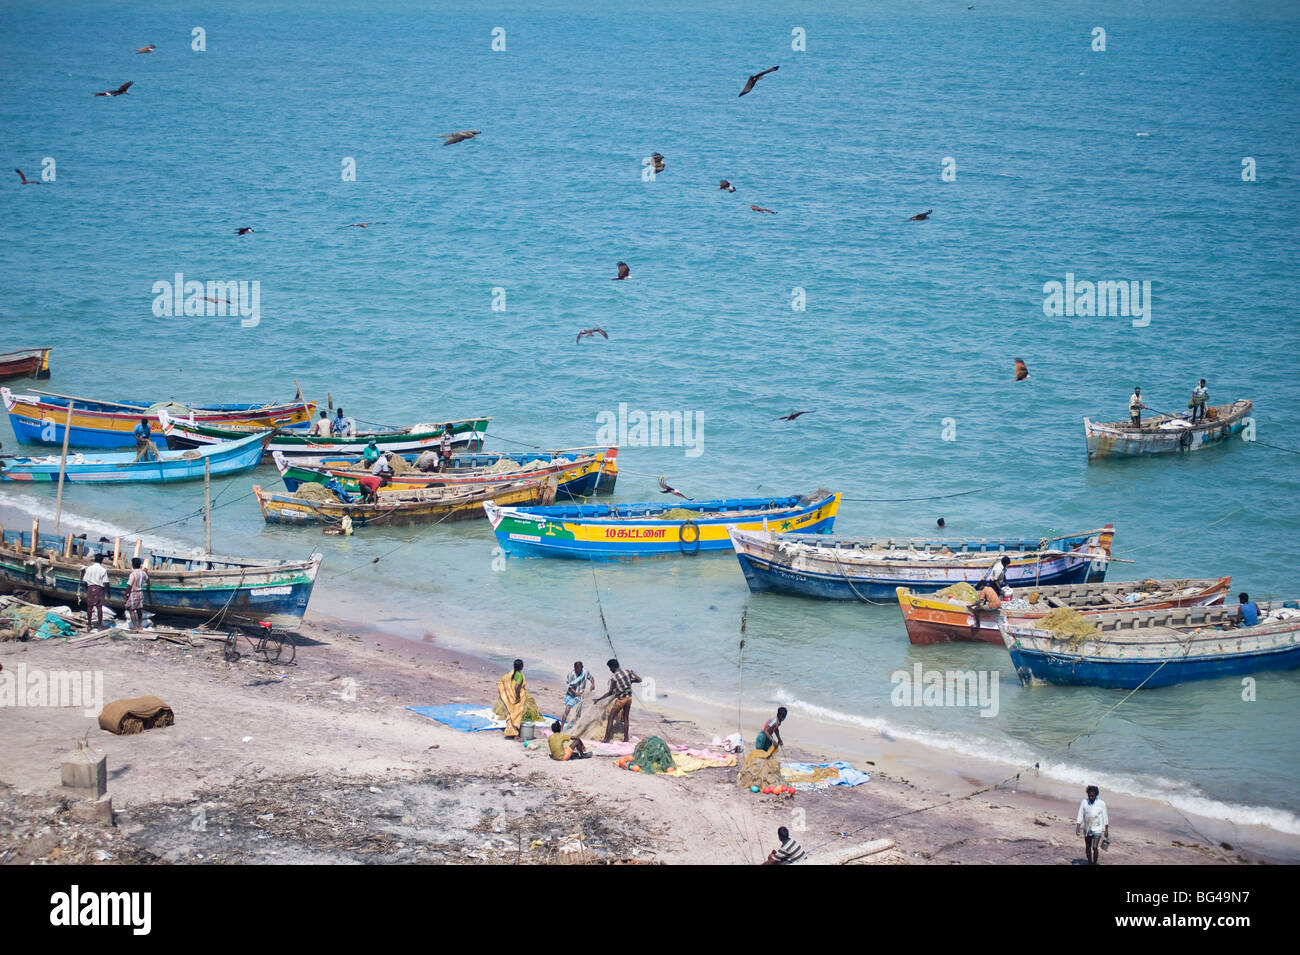 Brahmin kites soar over the boats as the morning's catch of fish is unloaded, Dhanushkodi, Tamil Nadu, India, - Stock Image